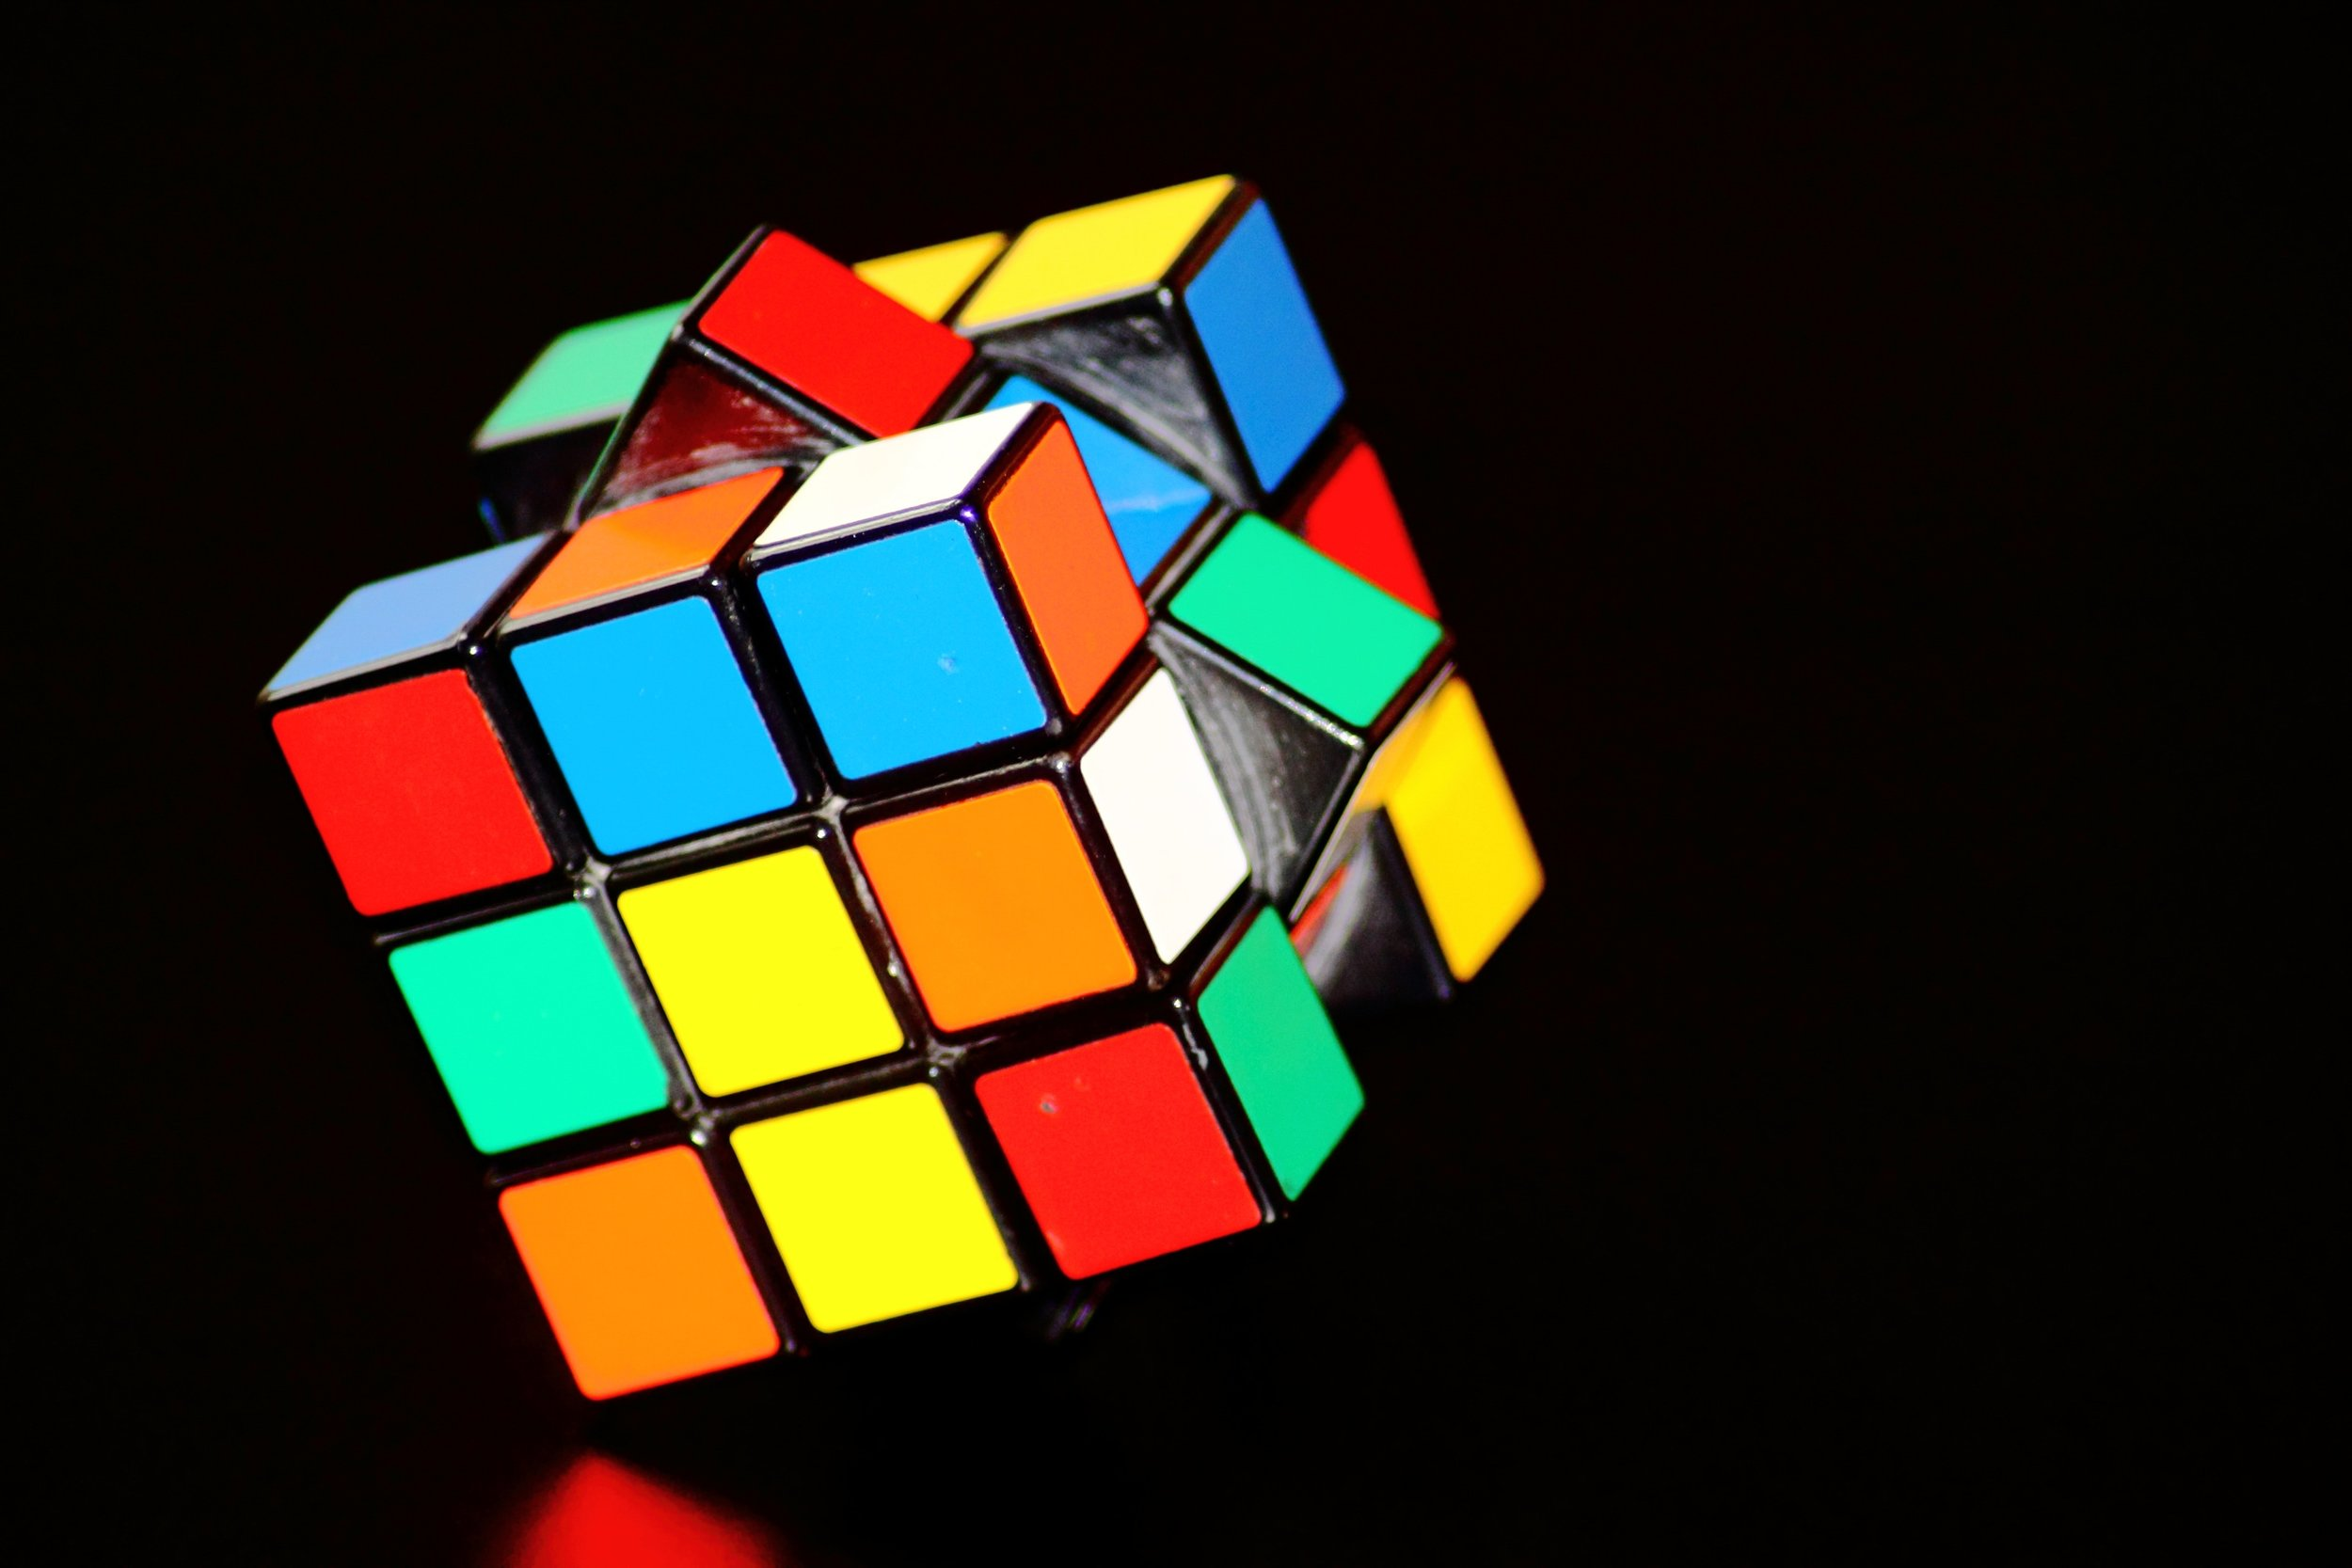 colorful-concentration-cube-54101.jpg